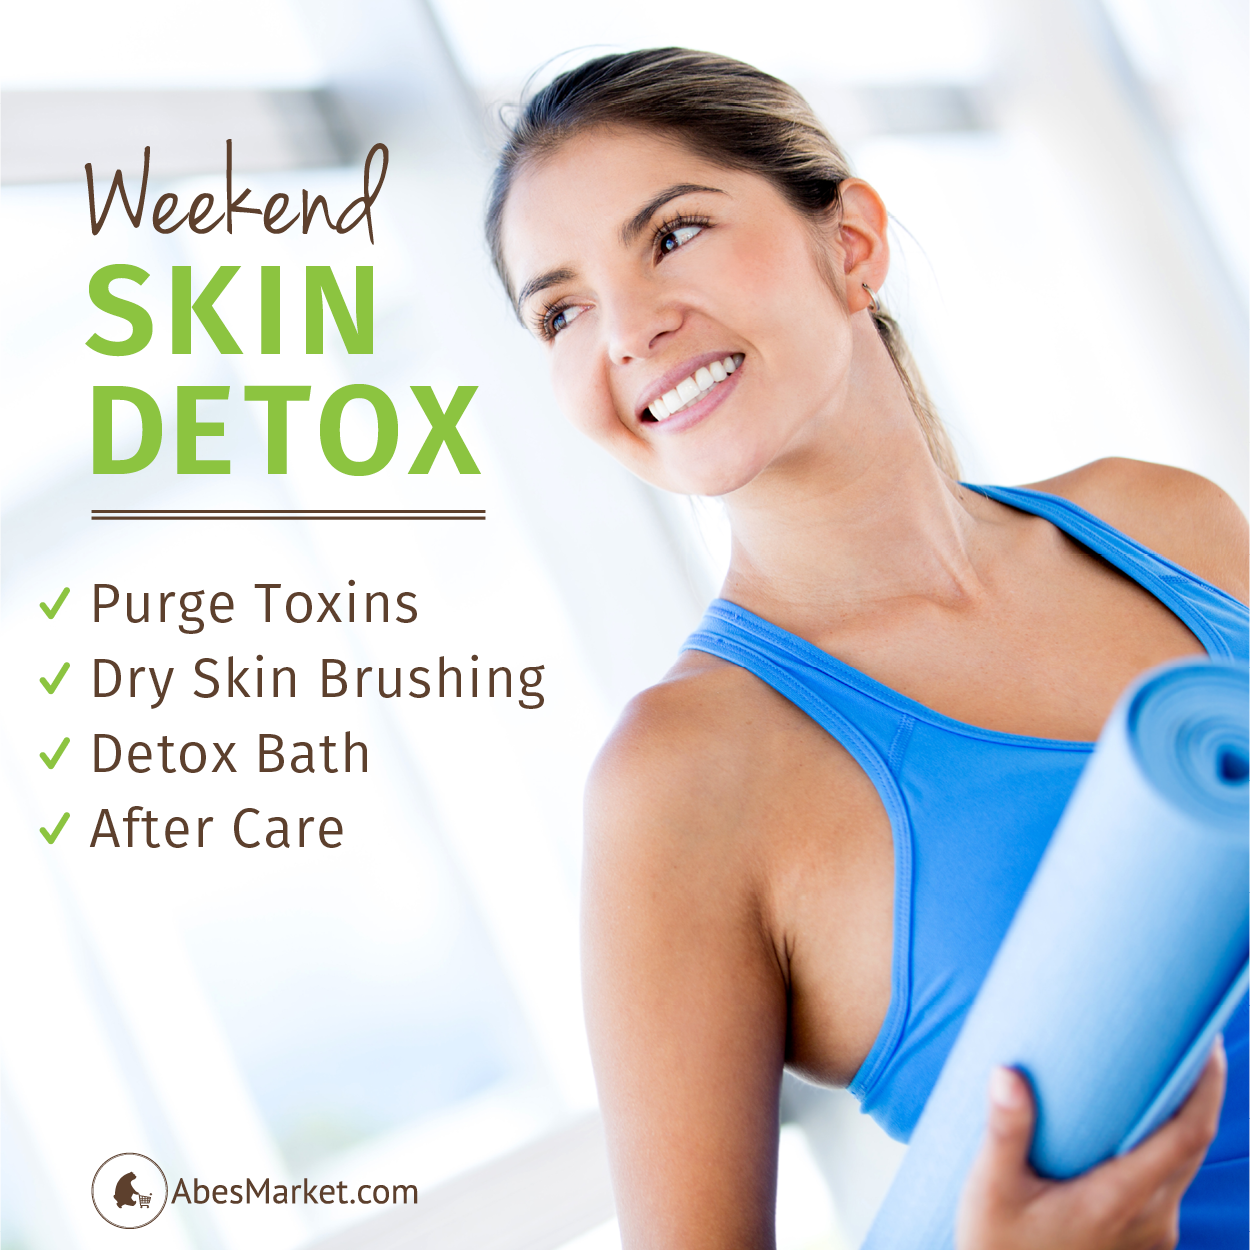 Start The Year With A Weekend Skin Detox About A Mom